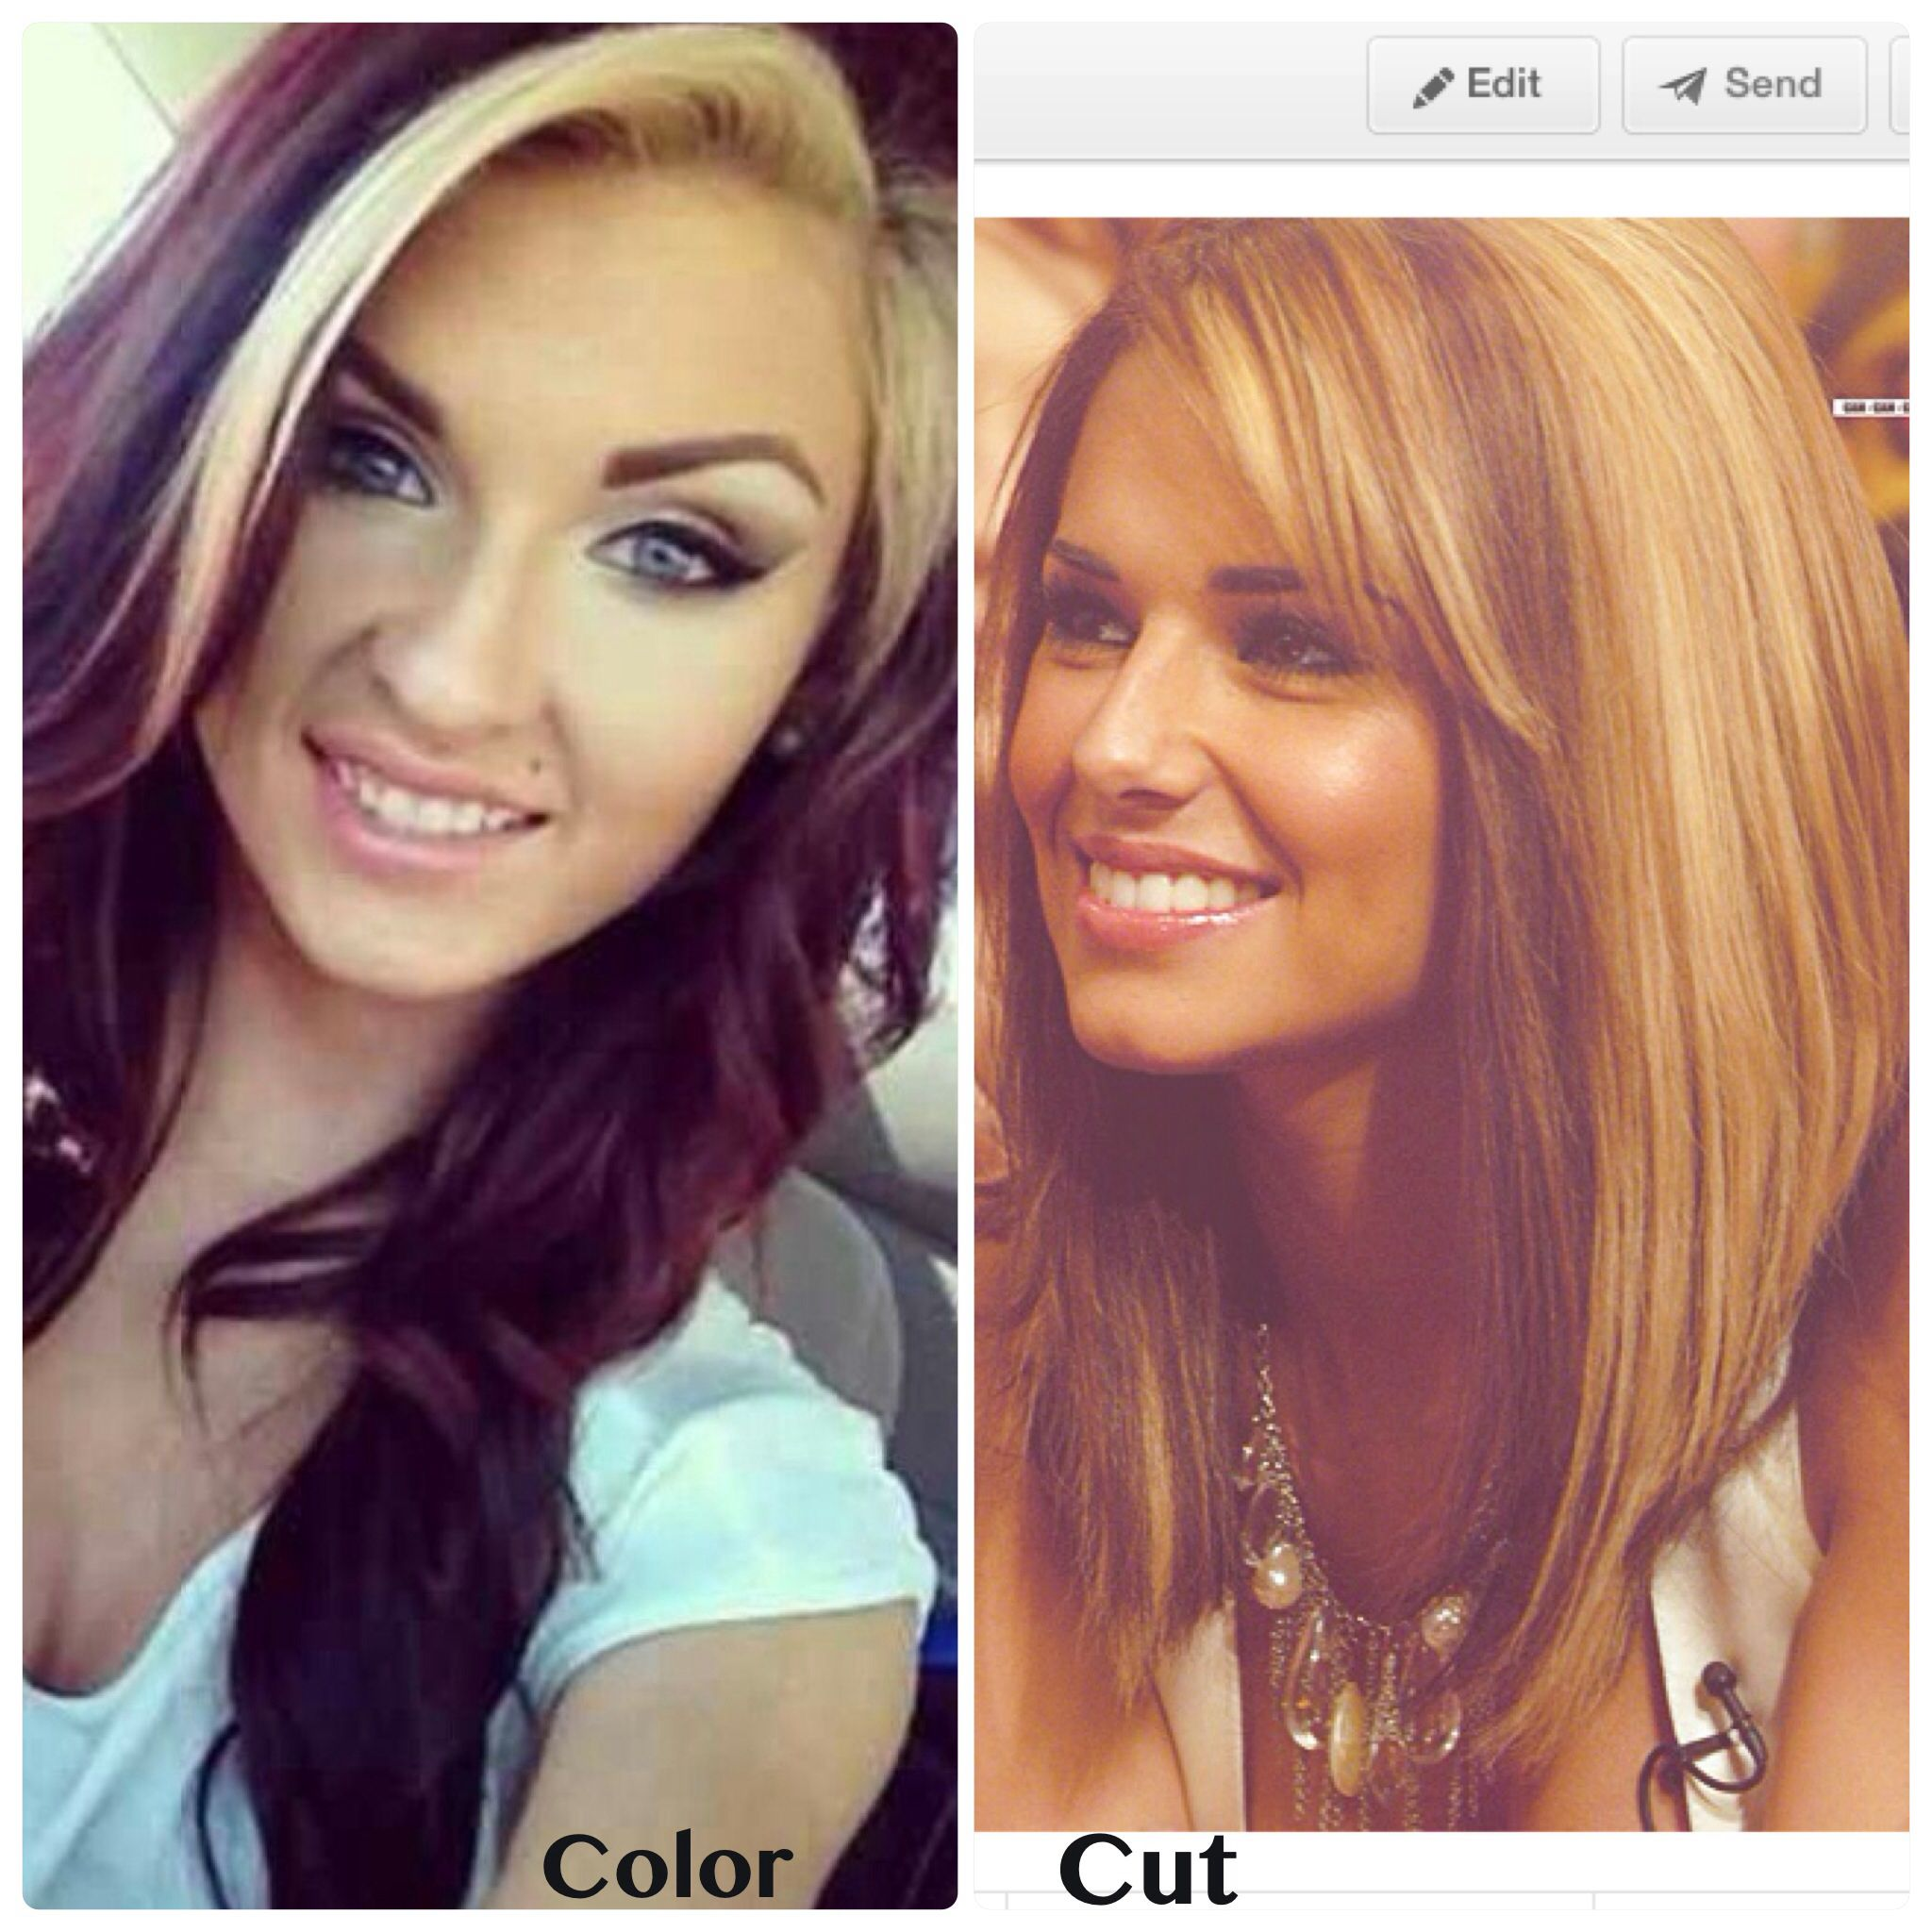 Color on the left cut on the right... Yep, this is happening in a few days! Eeeek!